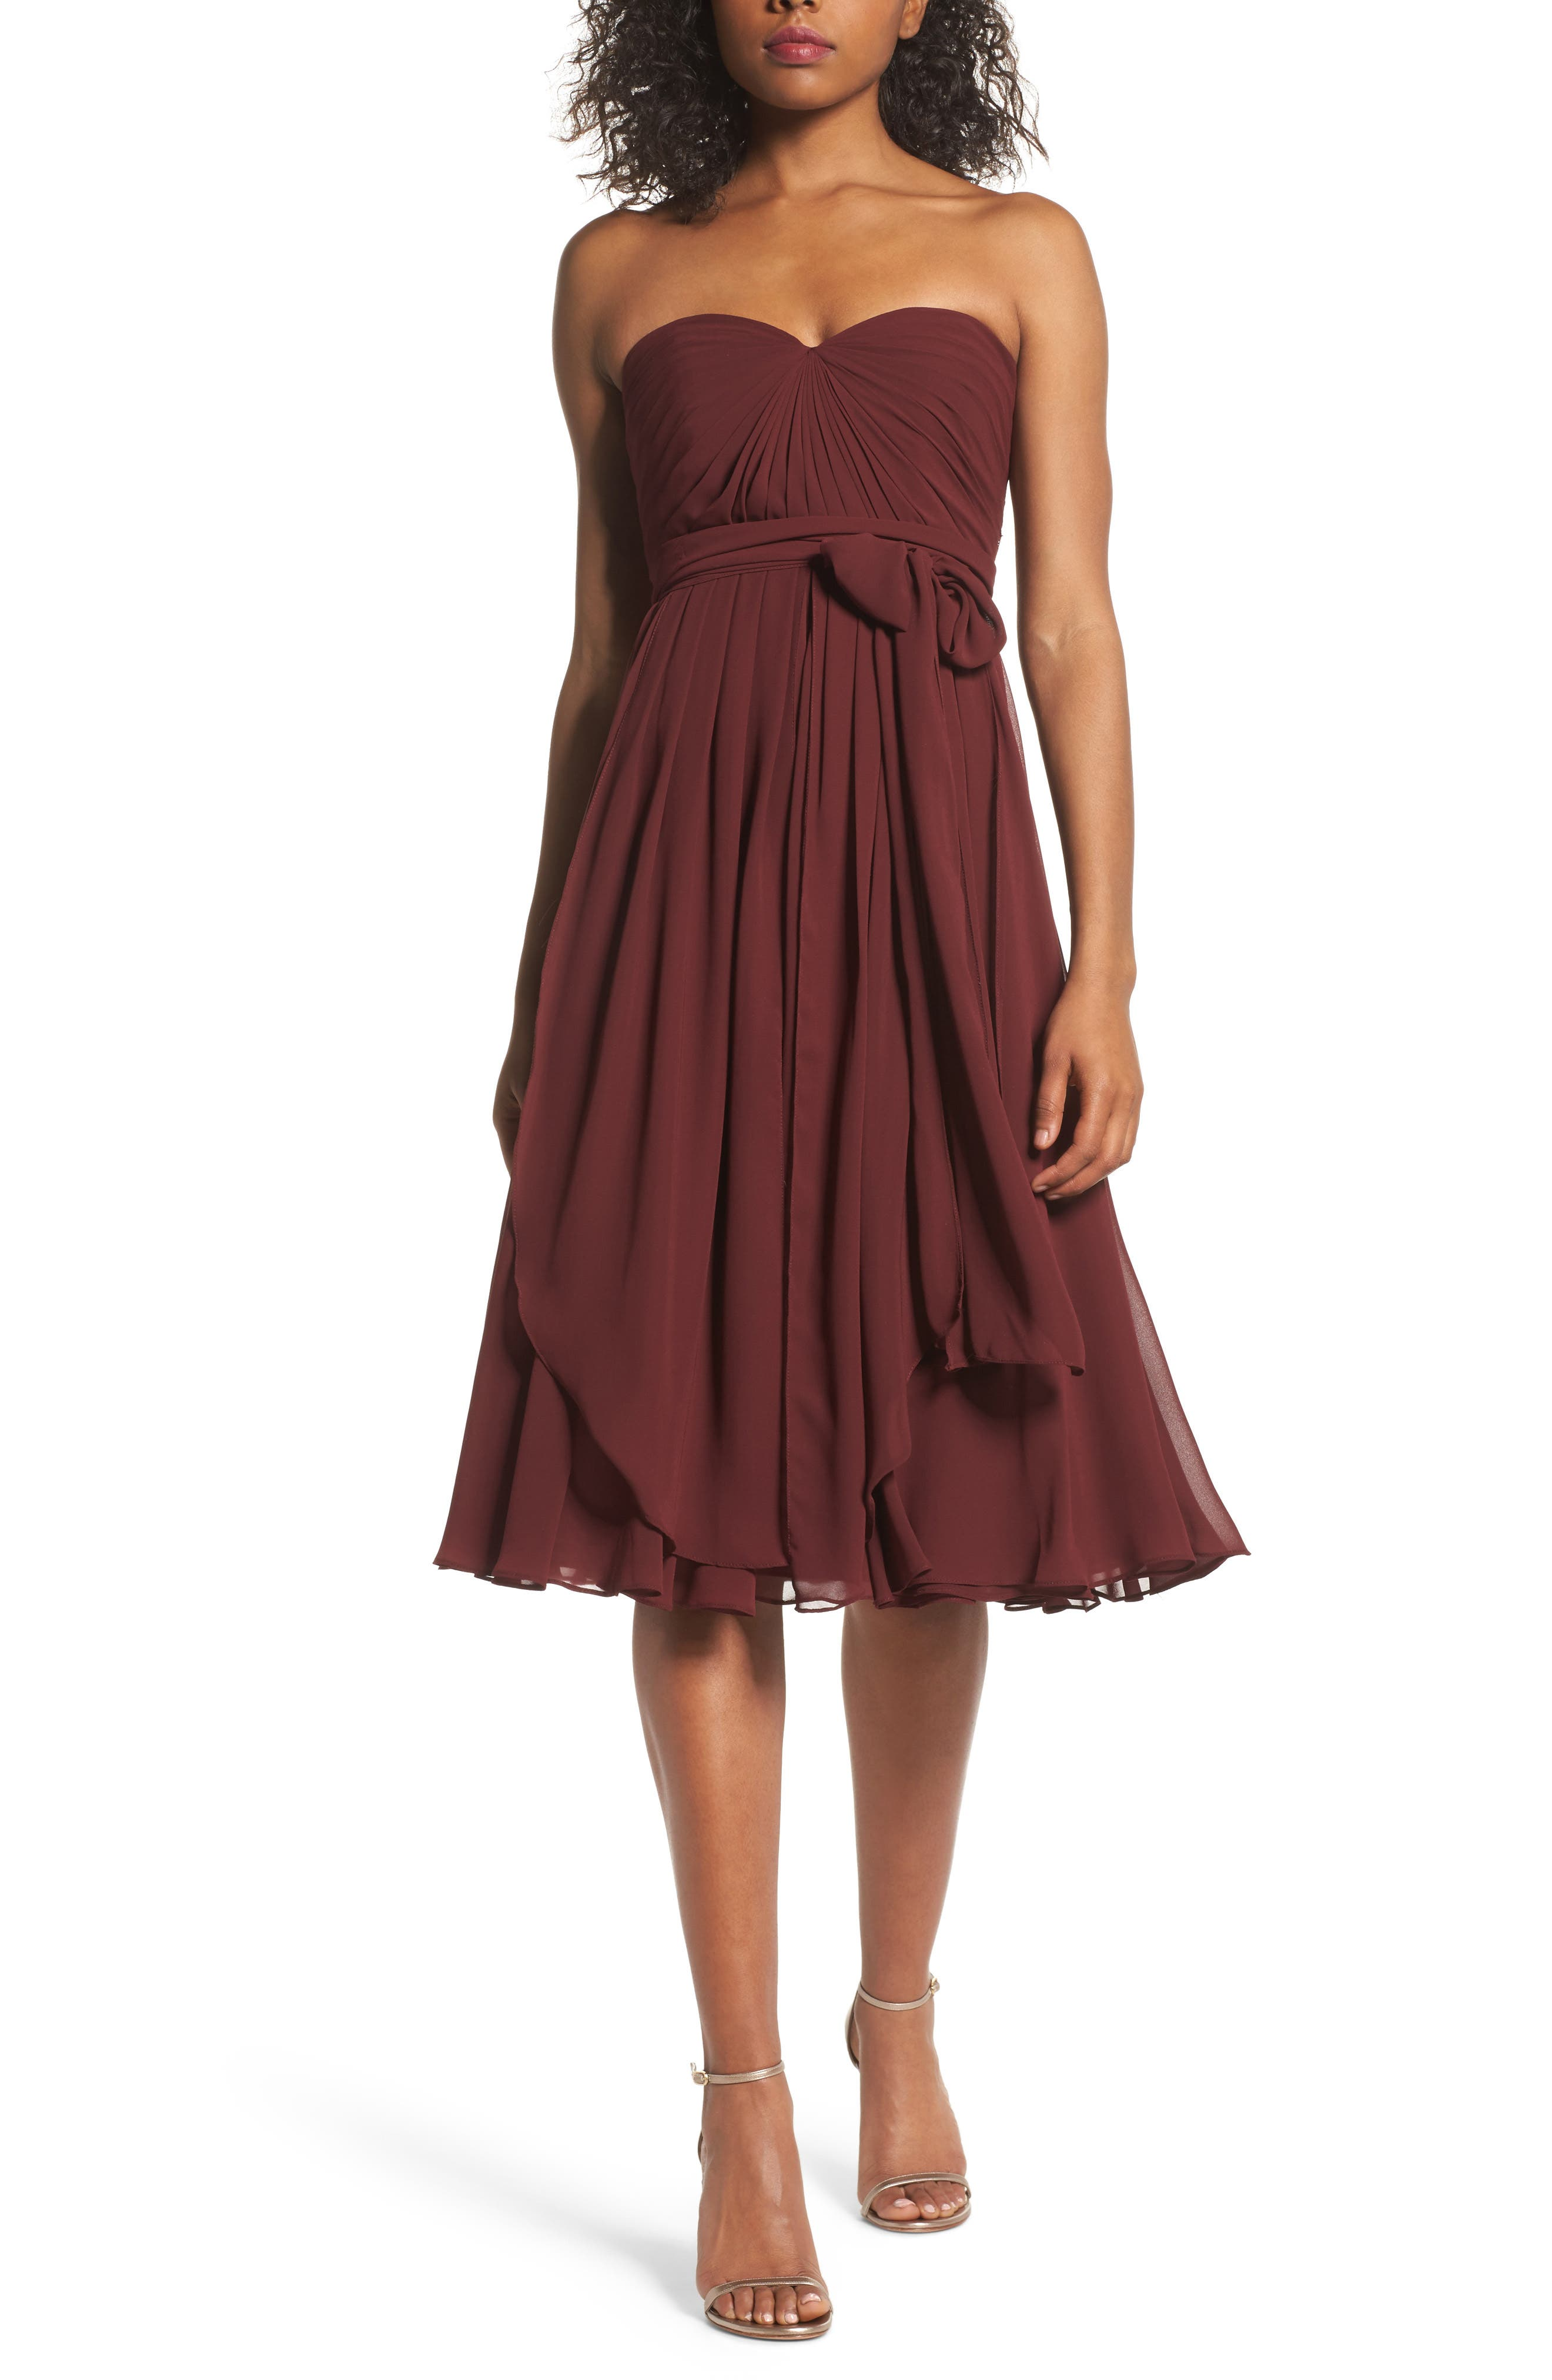 Emmie Convertible Chiffon Tea-Length Dress,                         Main,                         color, Hibiscus